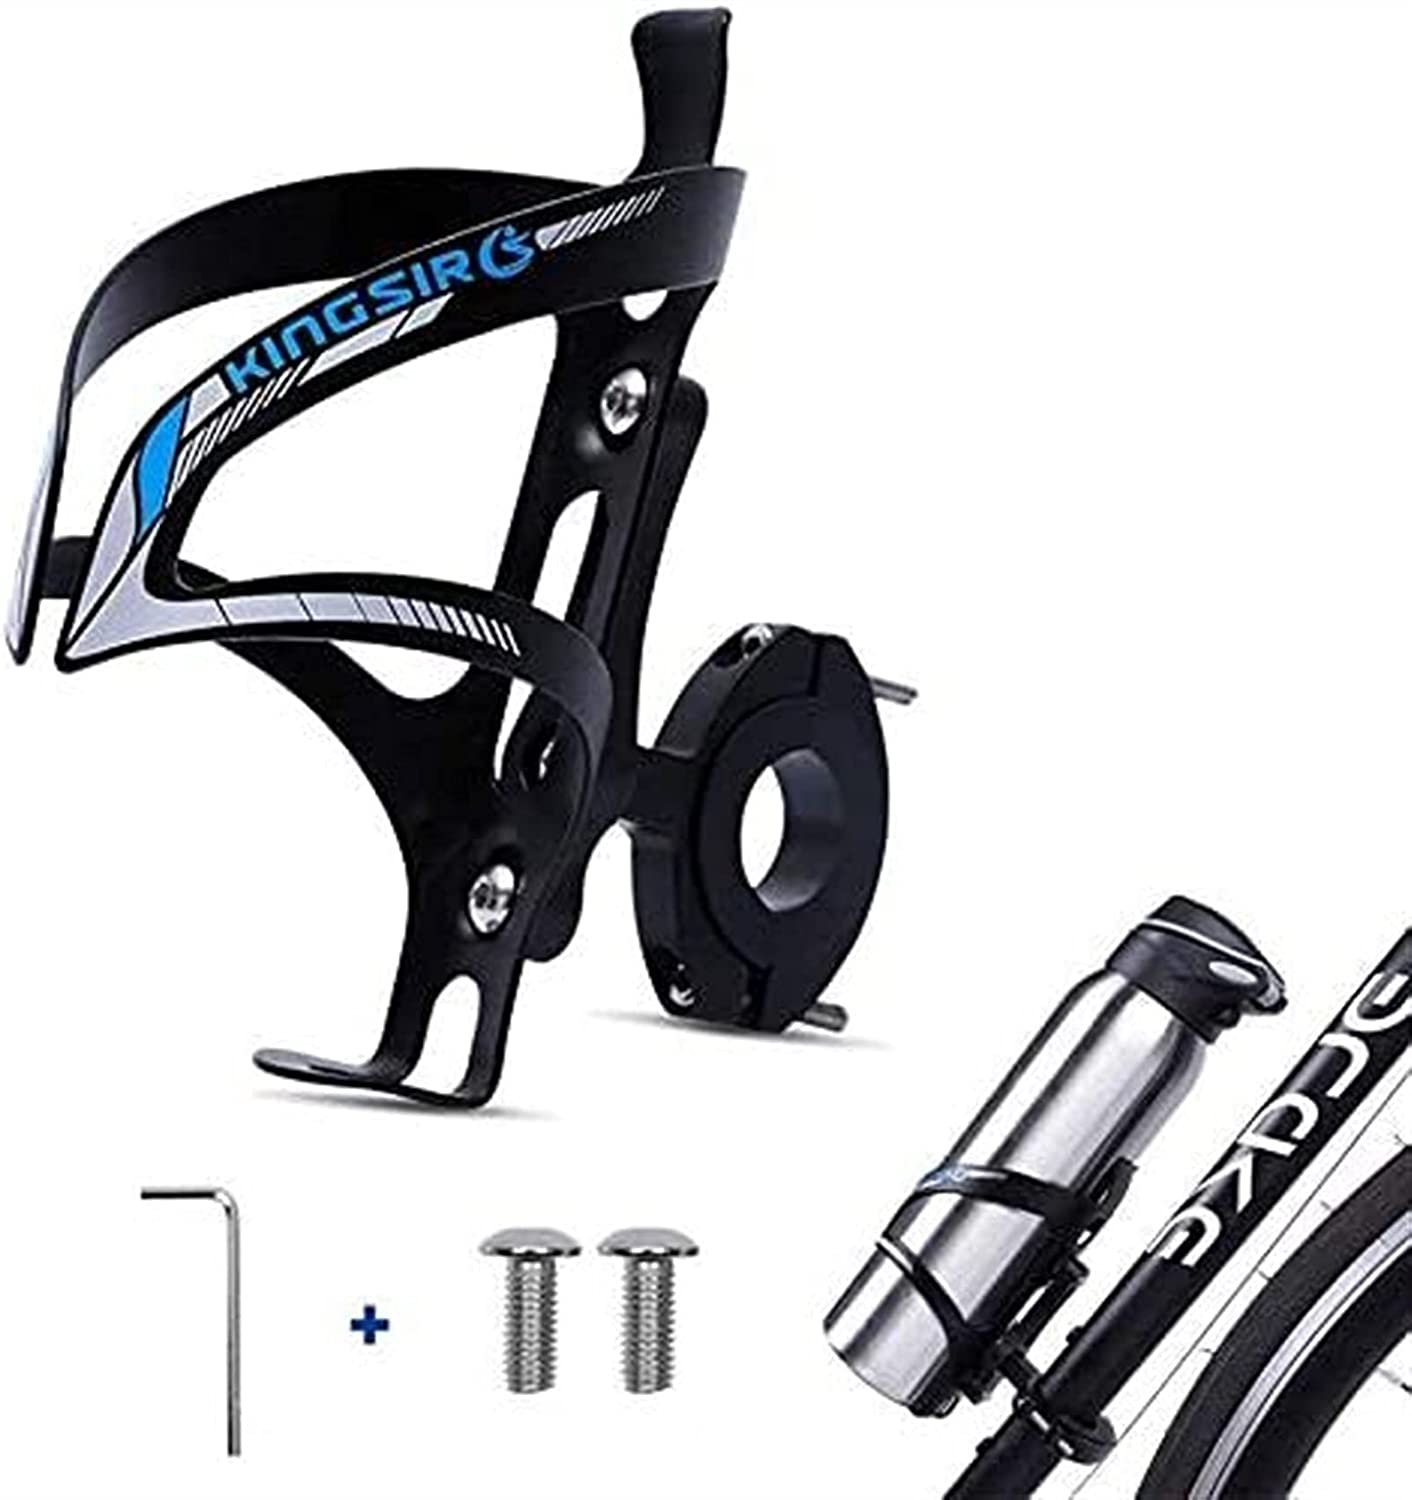 GXT Road Bike Bottle Max 5% OFF 43% OFF Cage Mountain Bicycle Bi